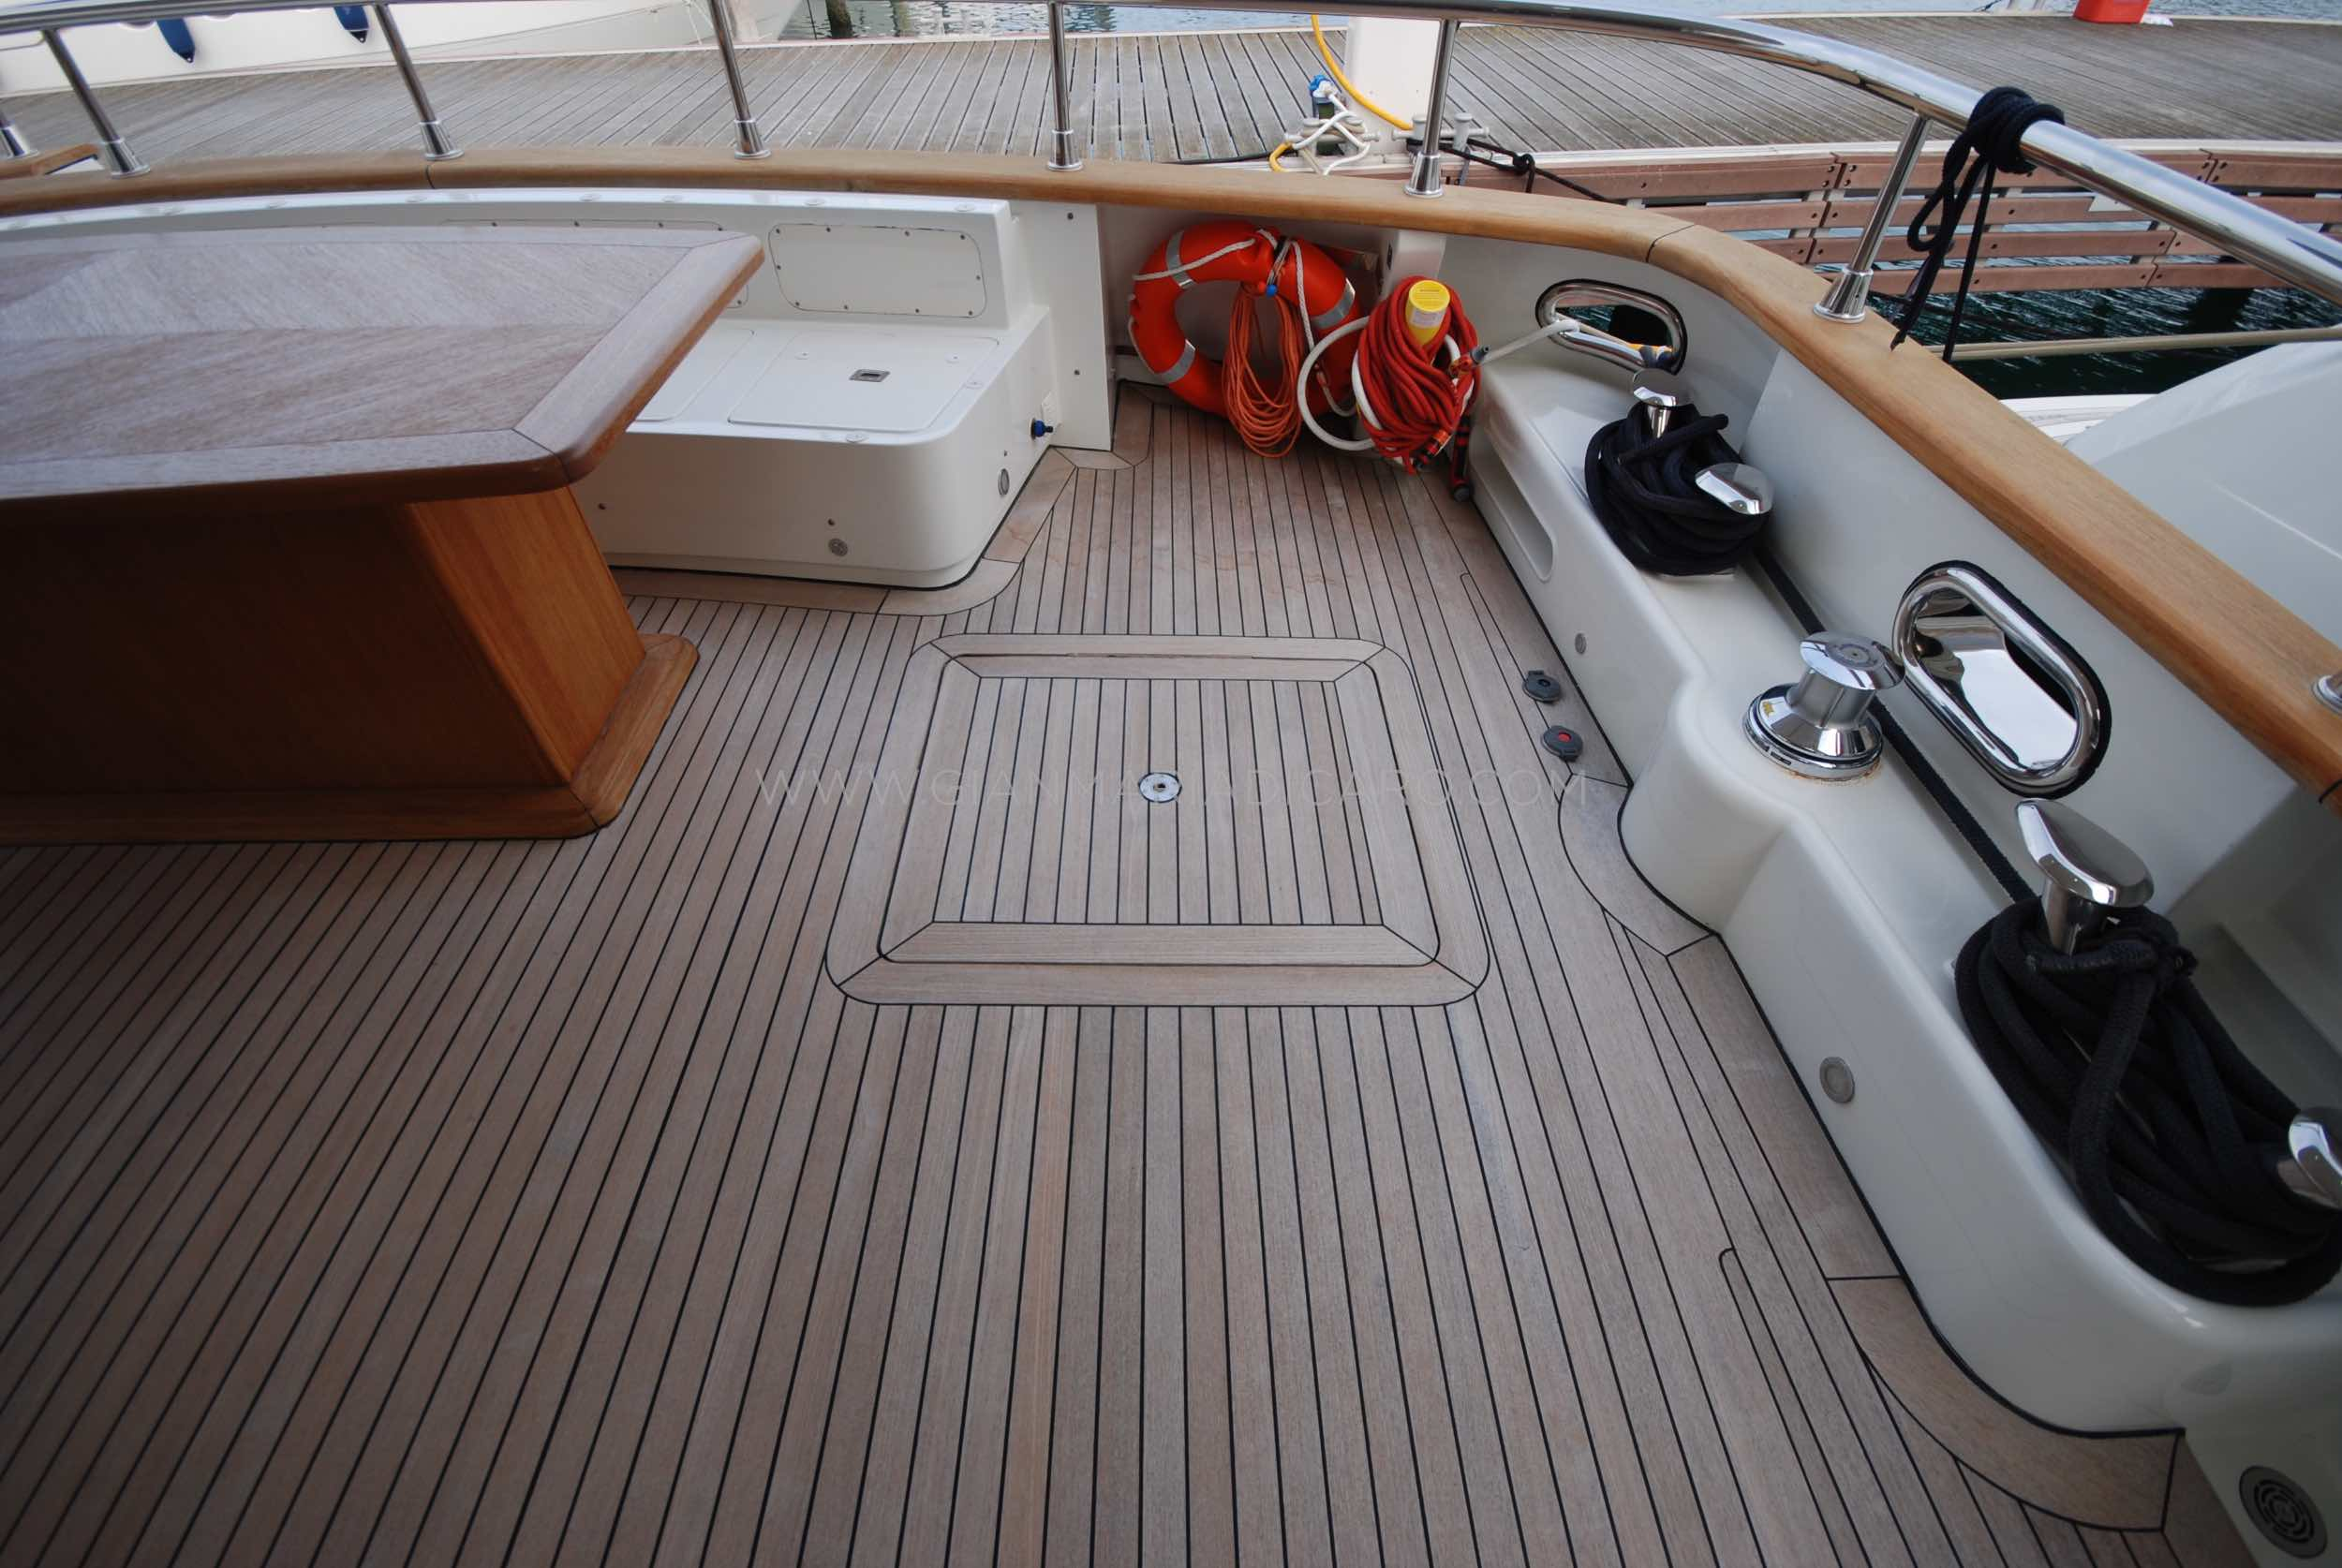 emys-yacht-22-unica-for-sale-44.jpg